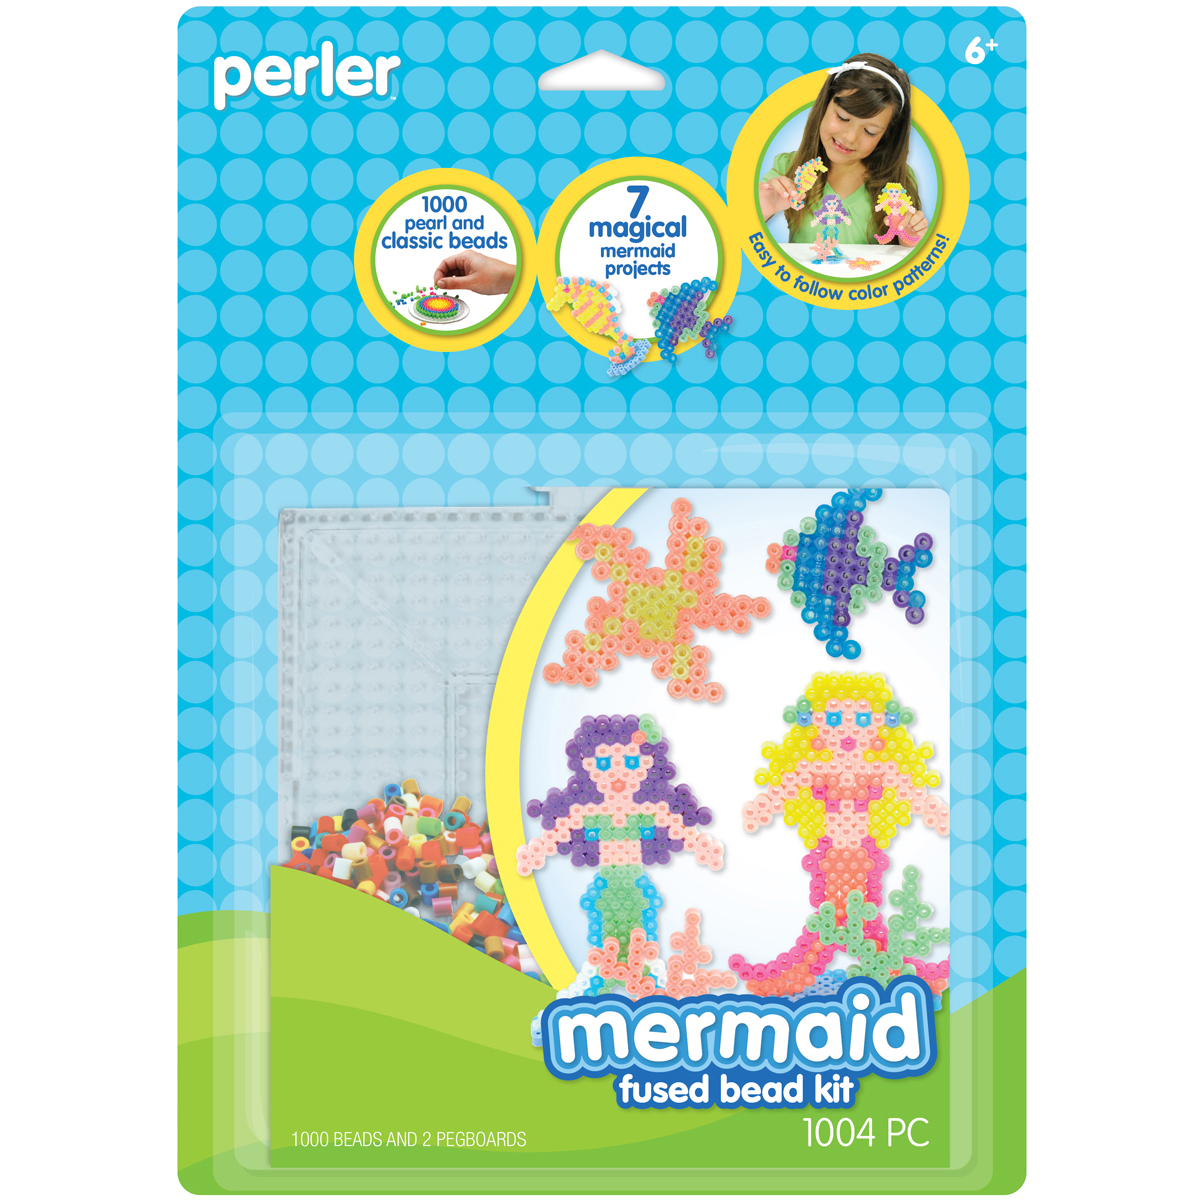 Perler Fun Fusion Fuse Bead Activity Kit, Mermaid